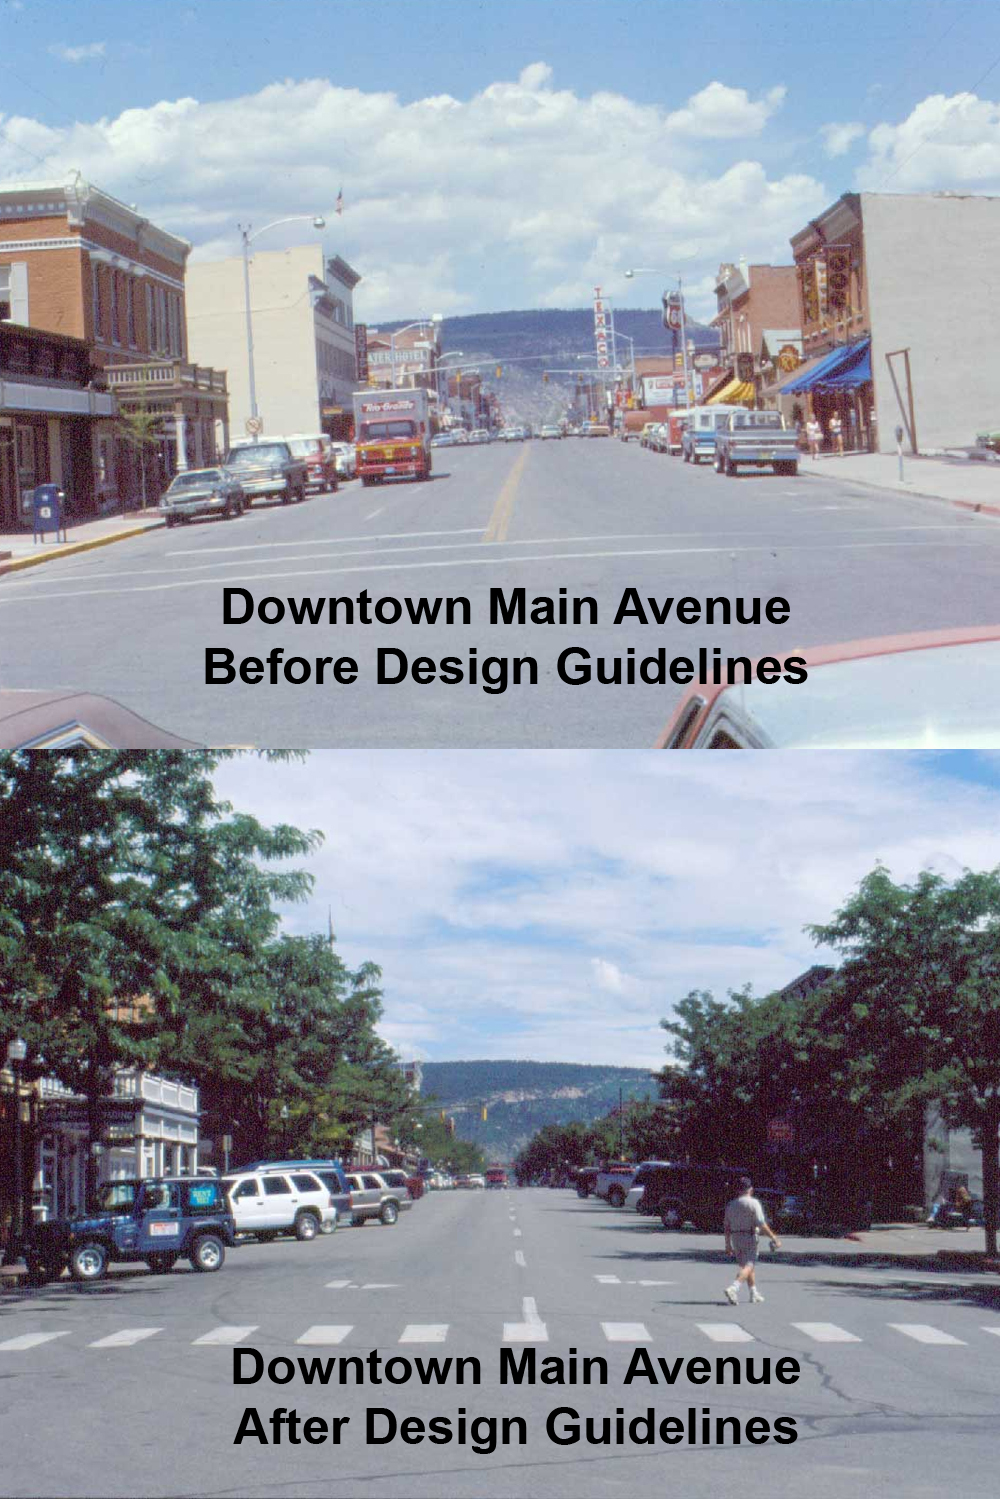 Downtown Main Avenue Before Design Guidelines and After Design Guidelines Opens in new window